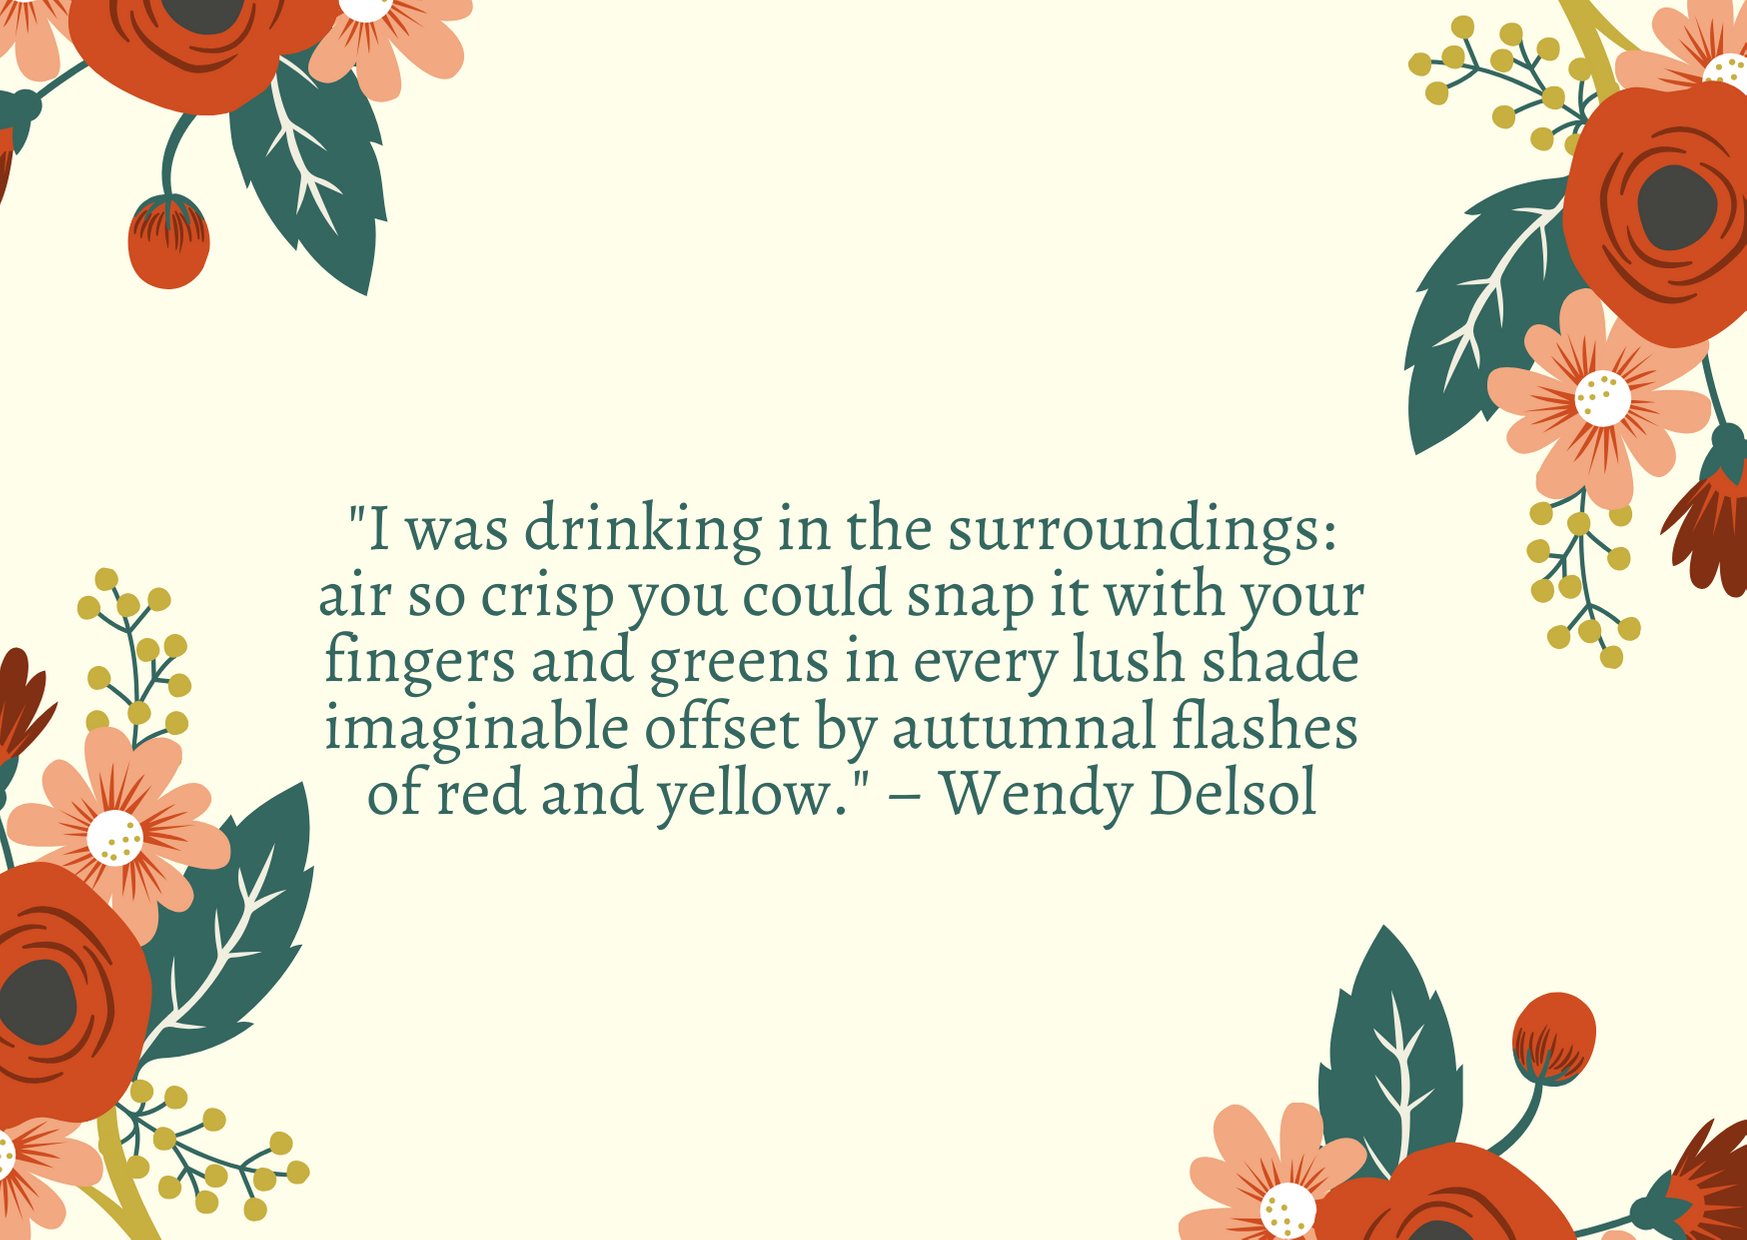 """I was drinking in the surroundings: air so crisp you could snap it with your fingers and greens in every lush shade imaginable offset by autumnal flashes of red and yellow."" – Wendy Delsol"